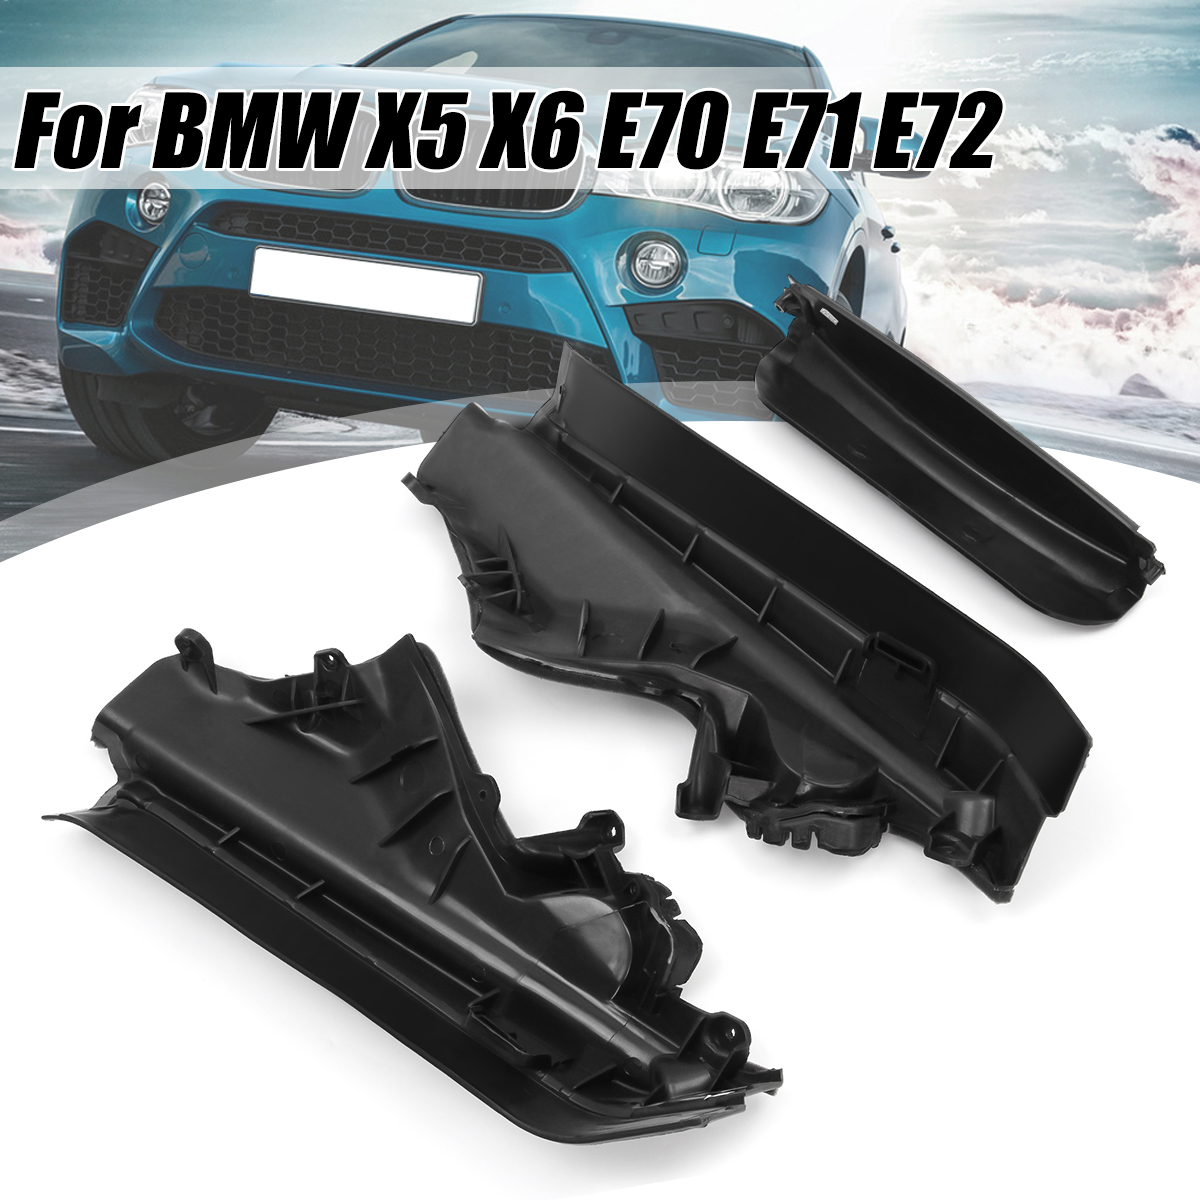 3x Car Engine Upper Compartment Partition Panel Set For BMW X5 X6 E70 Black Plastic 51717169419 51717169420 51717169421